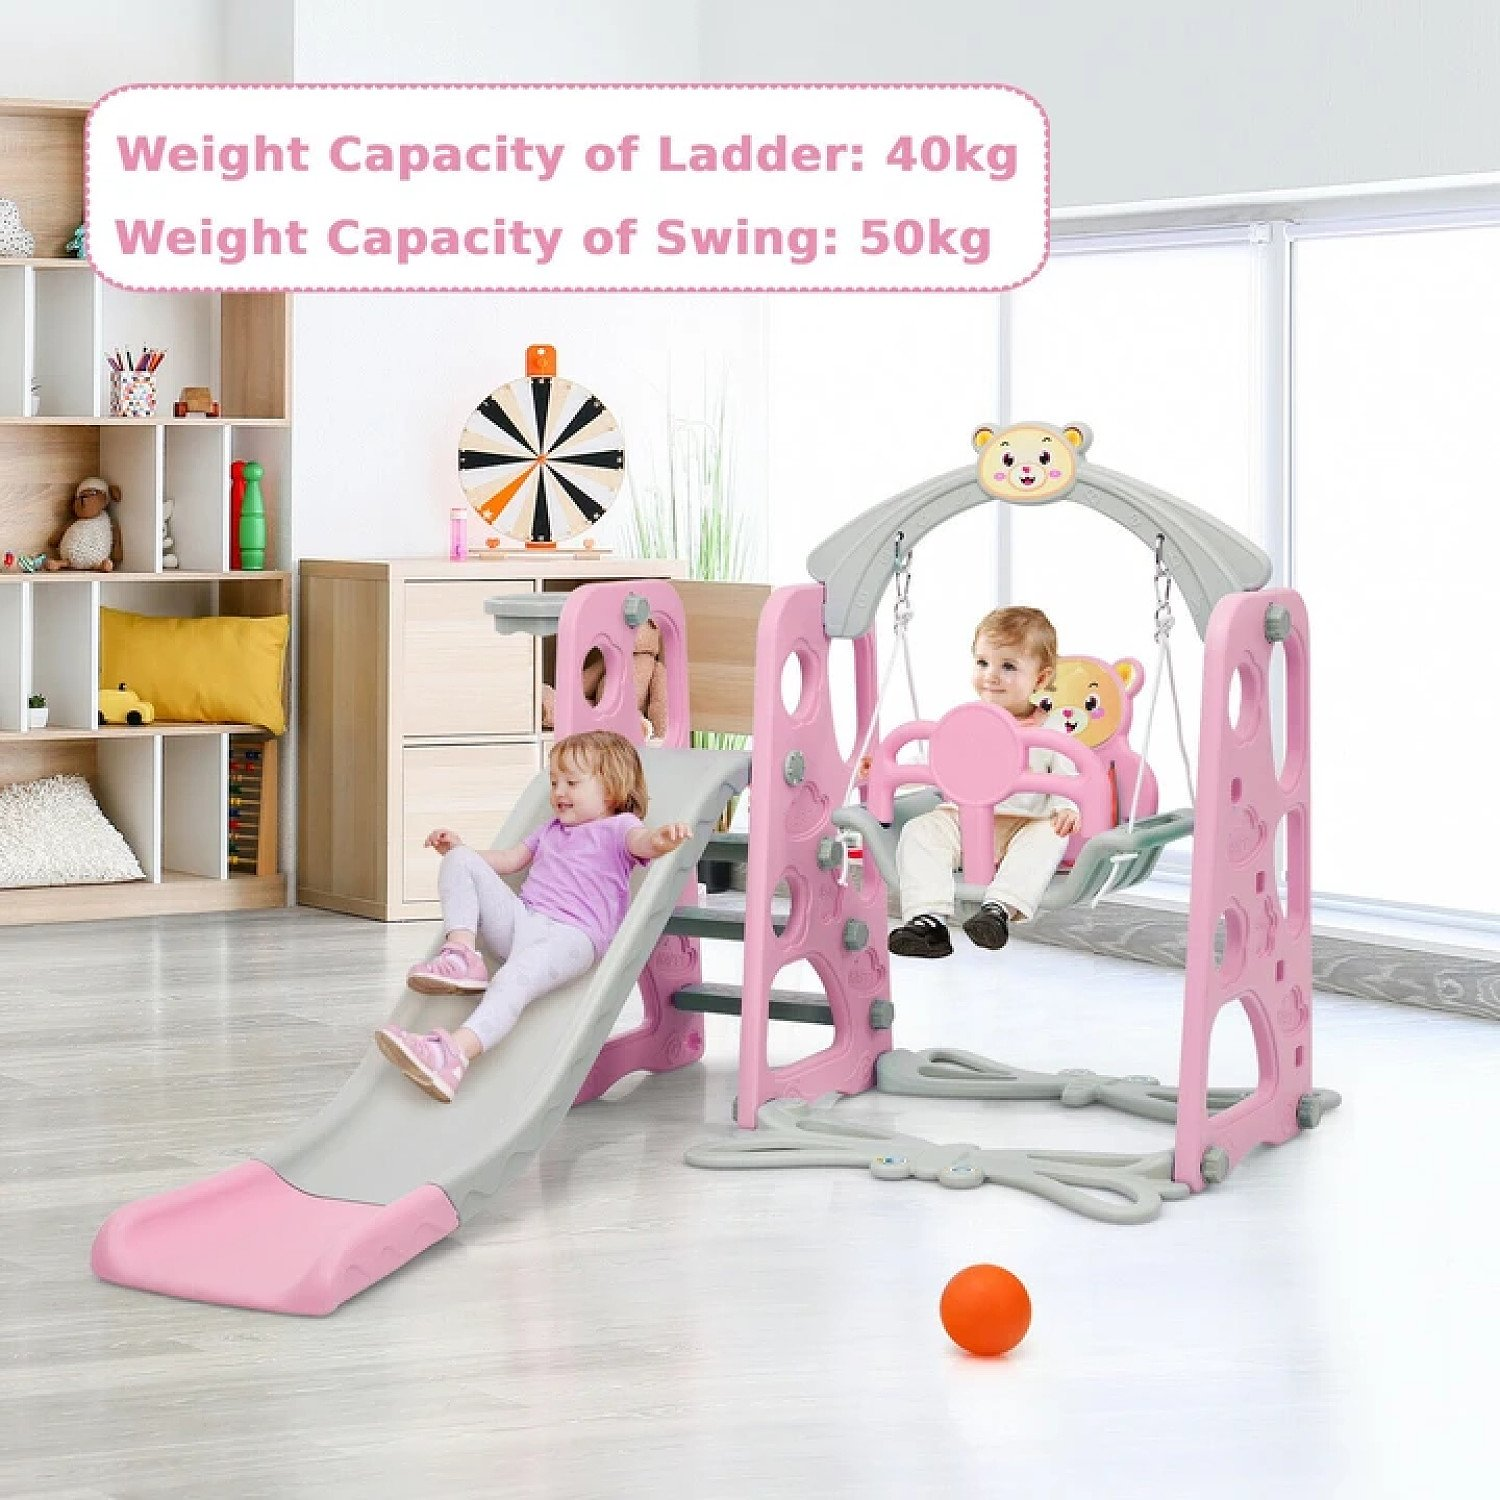 4 in 1 Kid's Swing and Slide Set Playground Free Postage